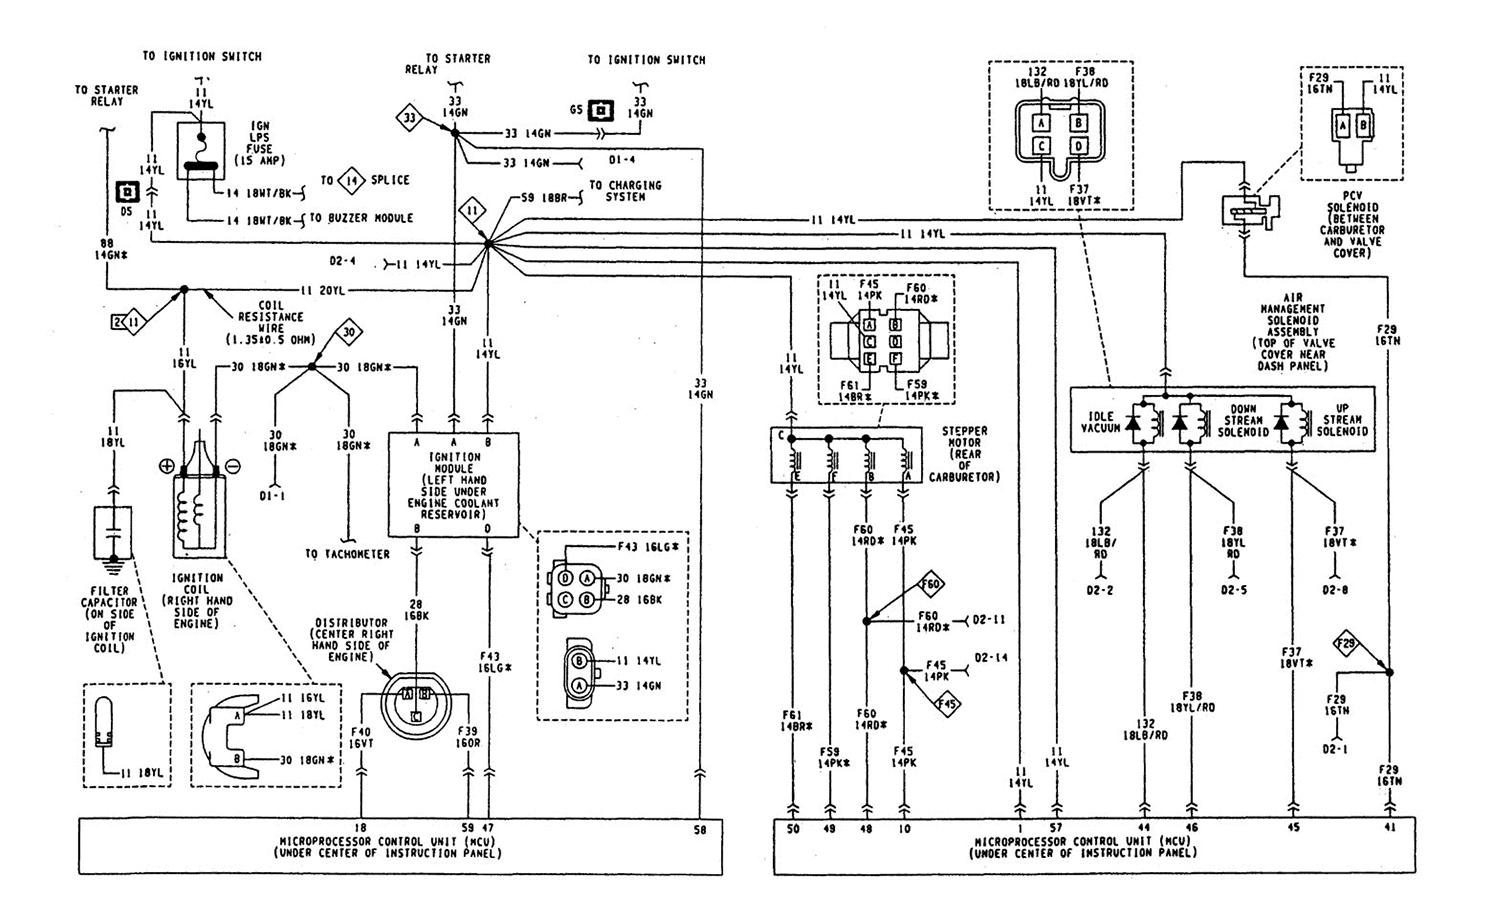 wiring diagram for 2003 jeep rubicon wiring diagram show 2003 jeep tj wiring diagram [ 1495 x 900 Pixel ]